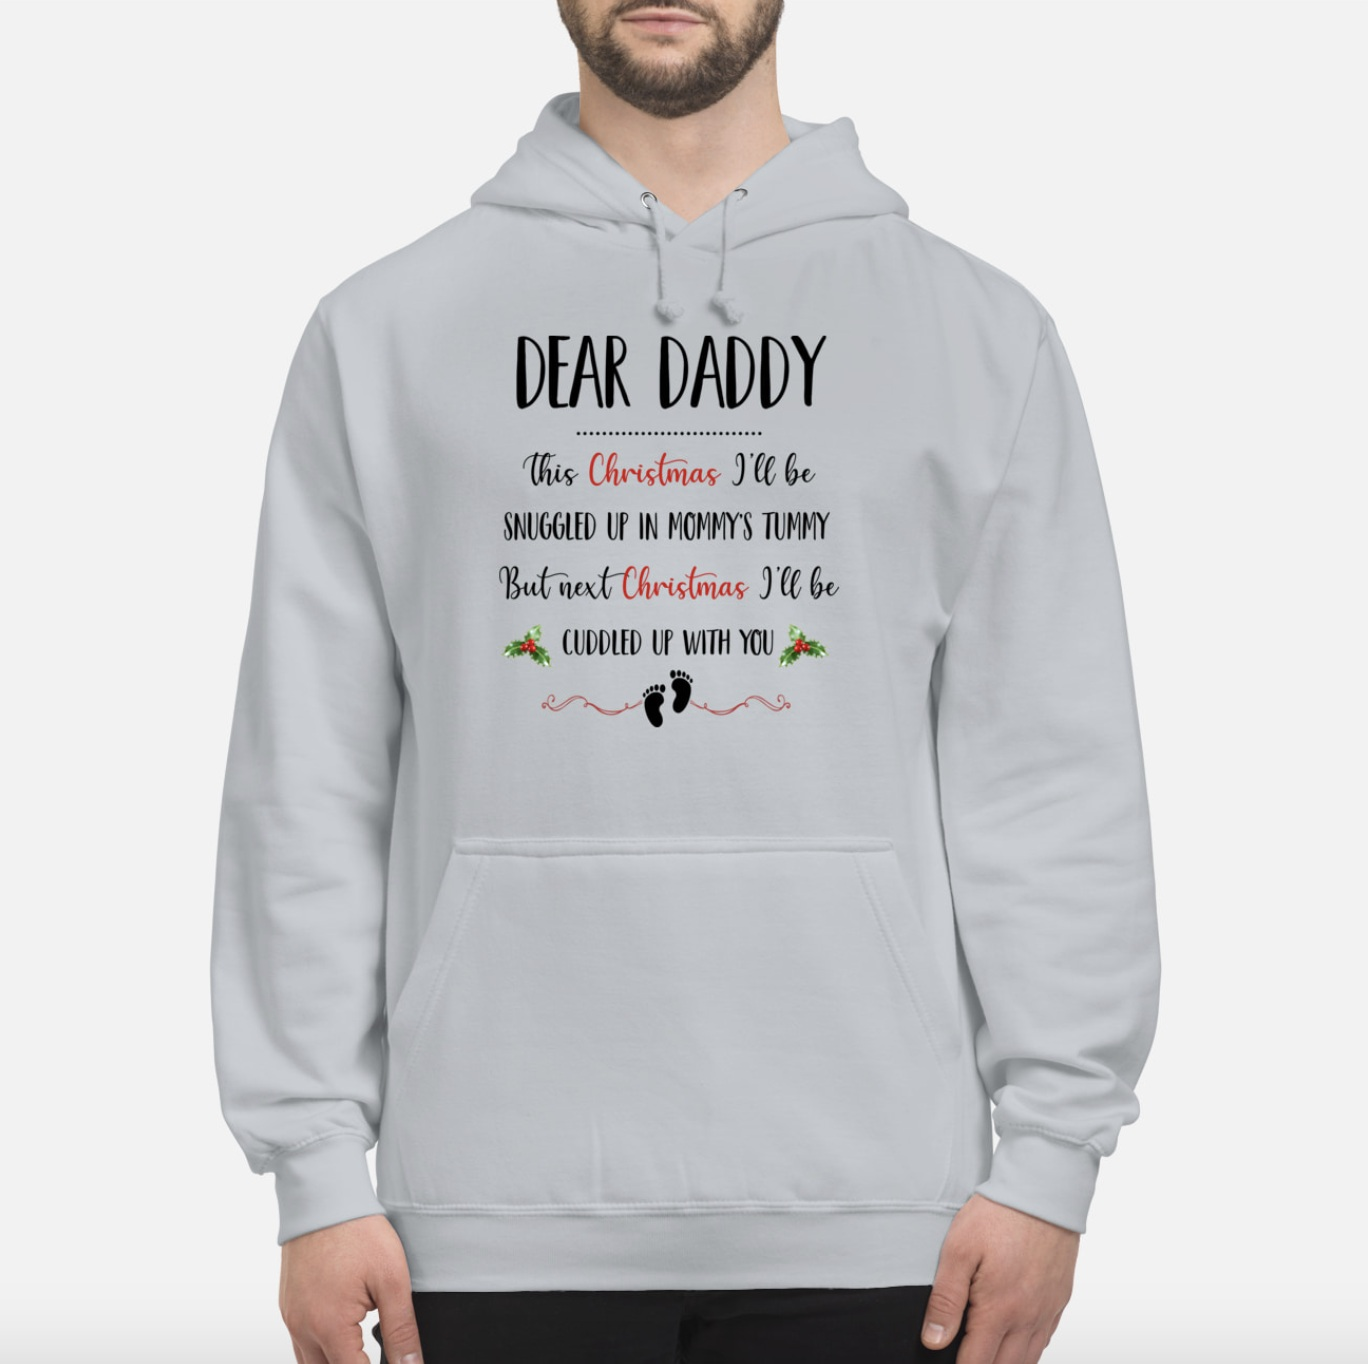 Dear daddy this christmas I'll be snuggled up in mommy's tummy hoodie